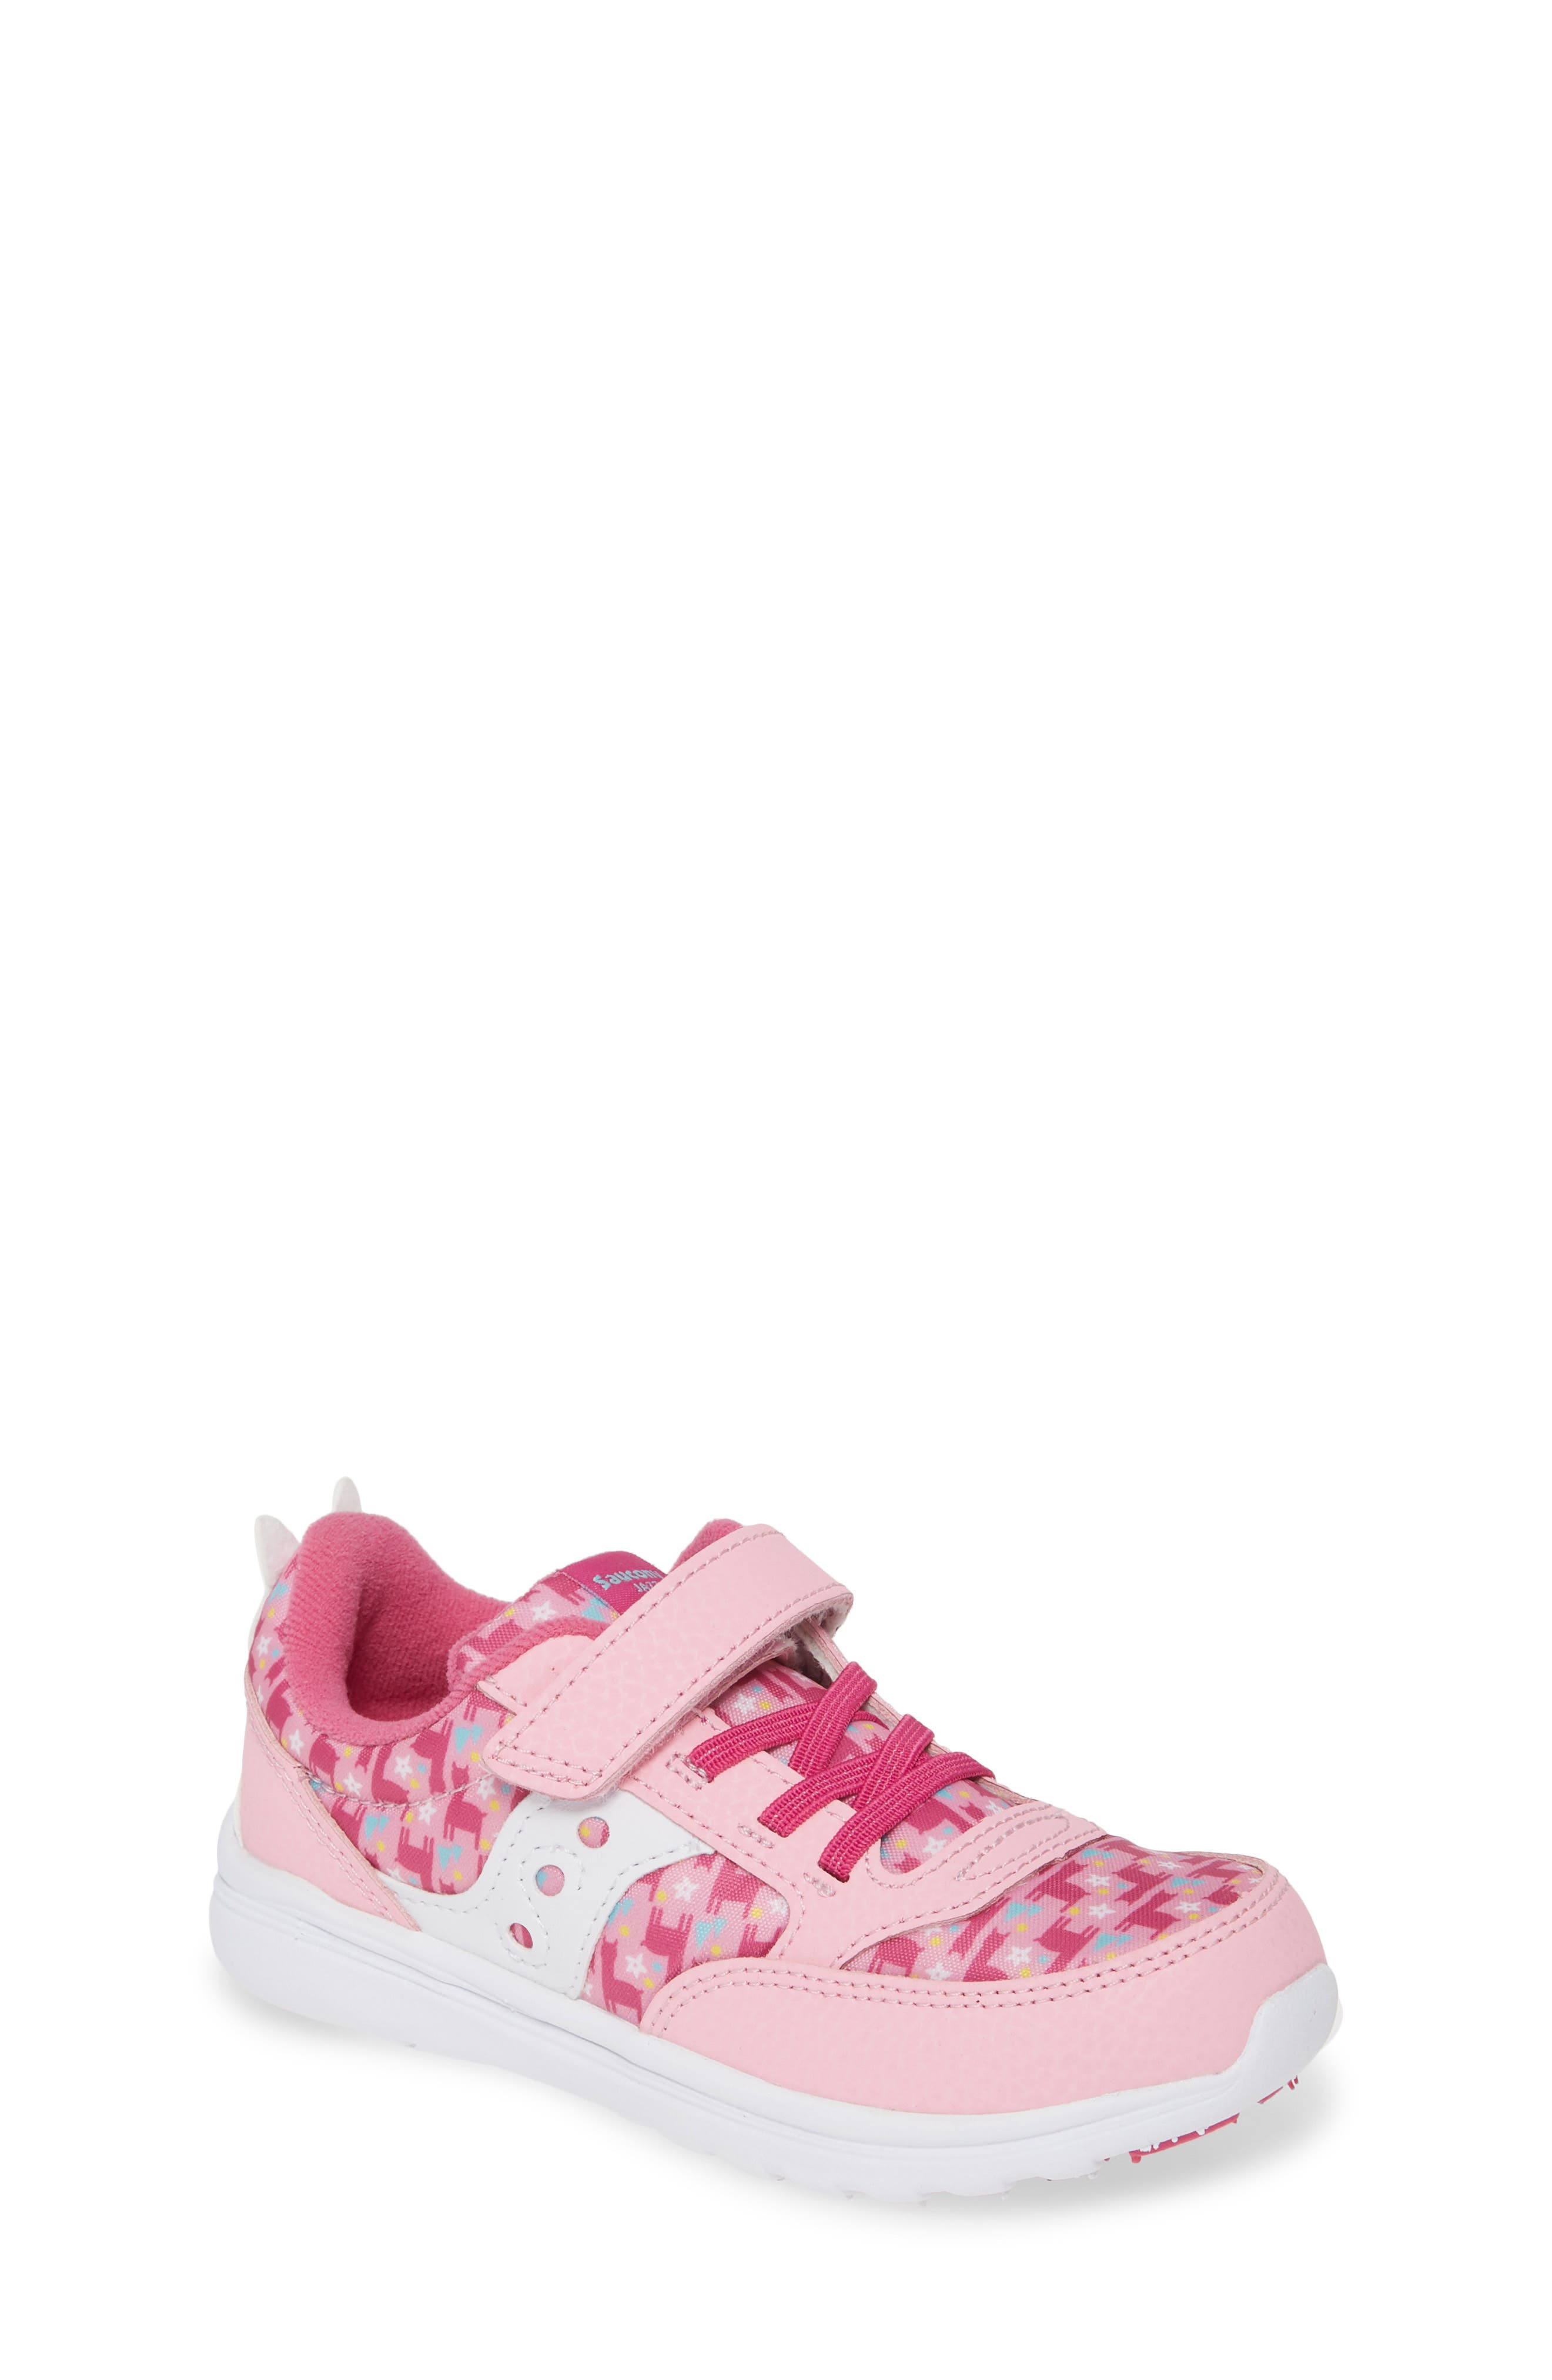 All Girls' Baby & Walker Shoes | Nordstrom